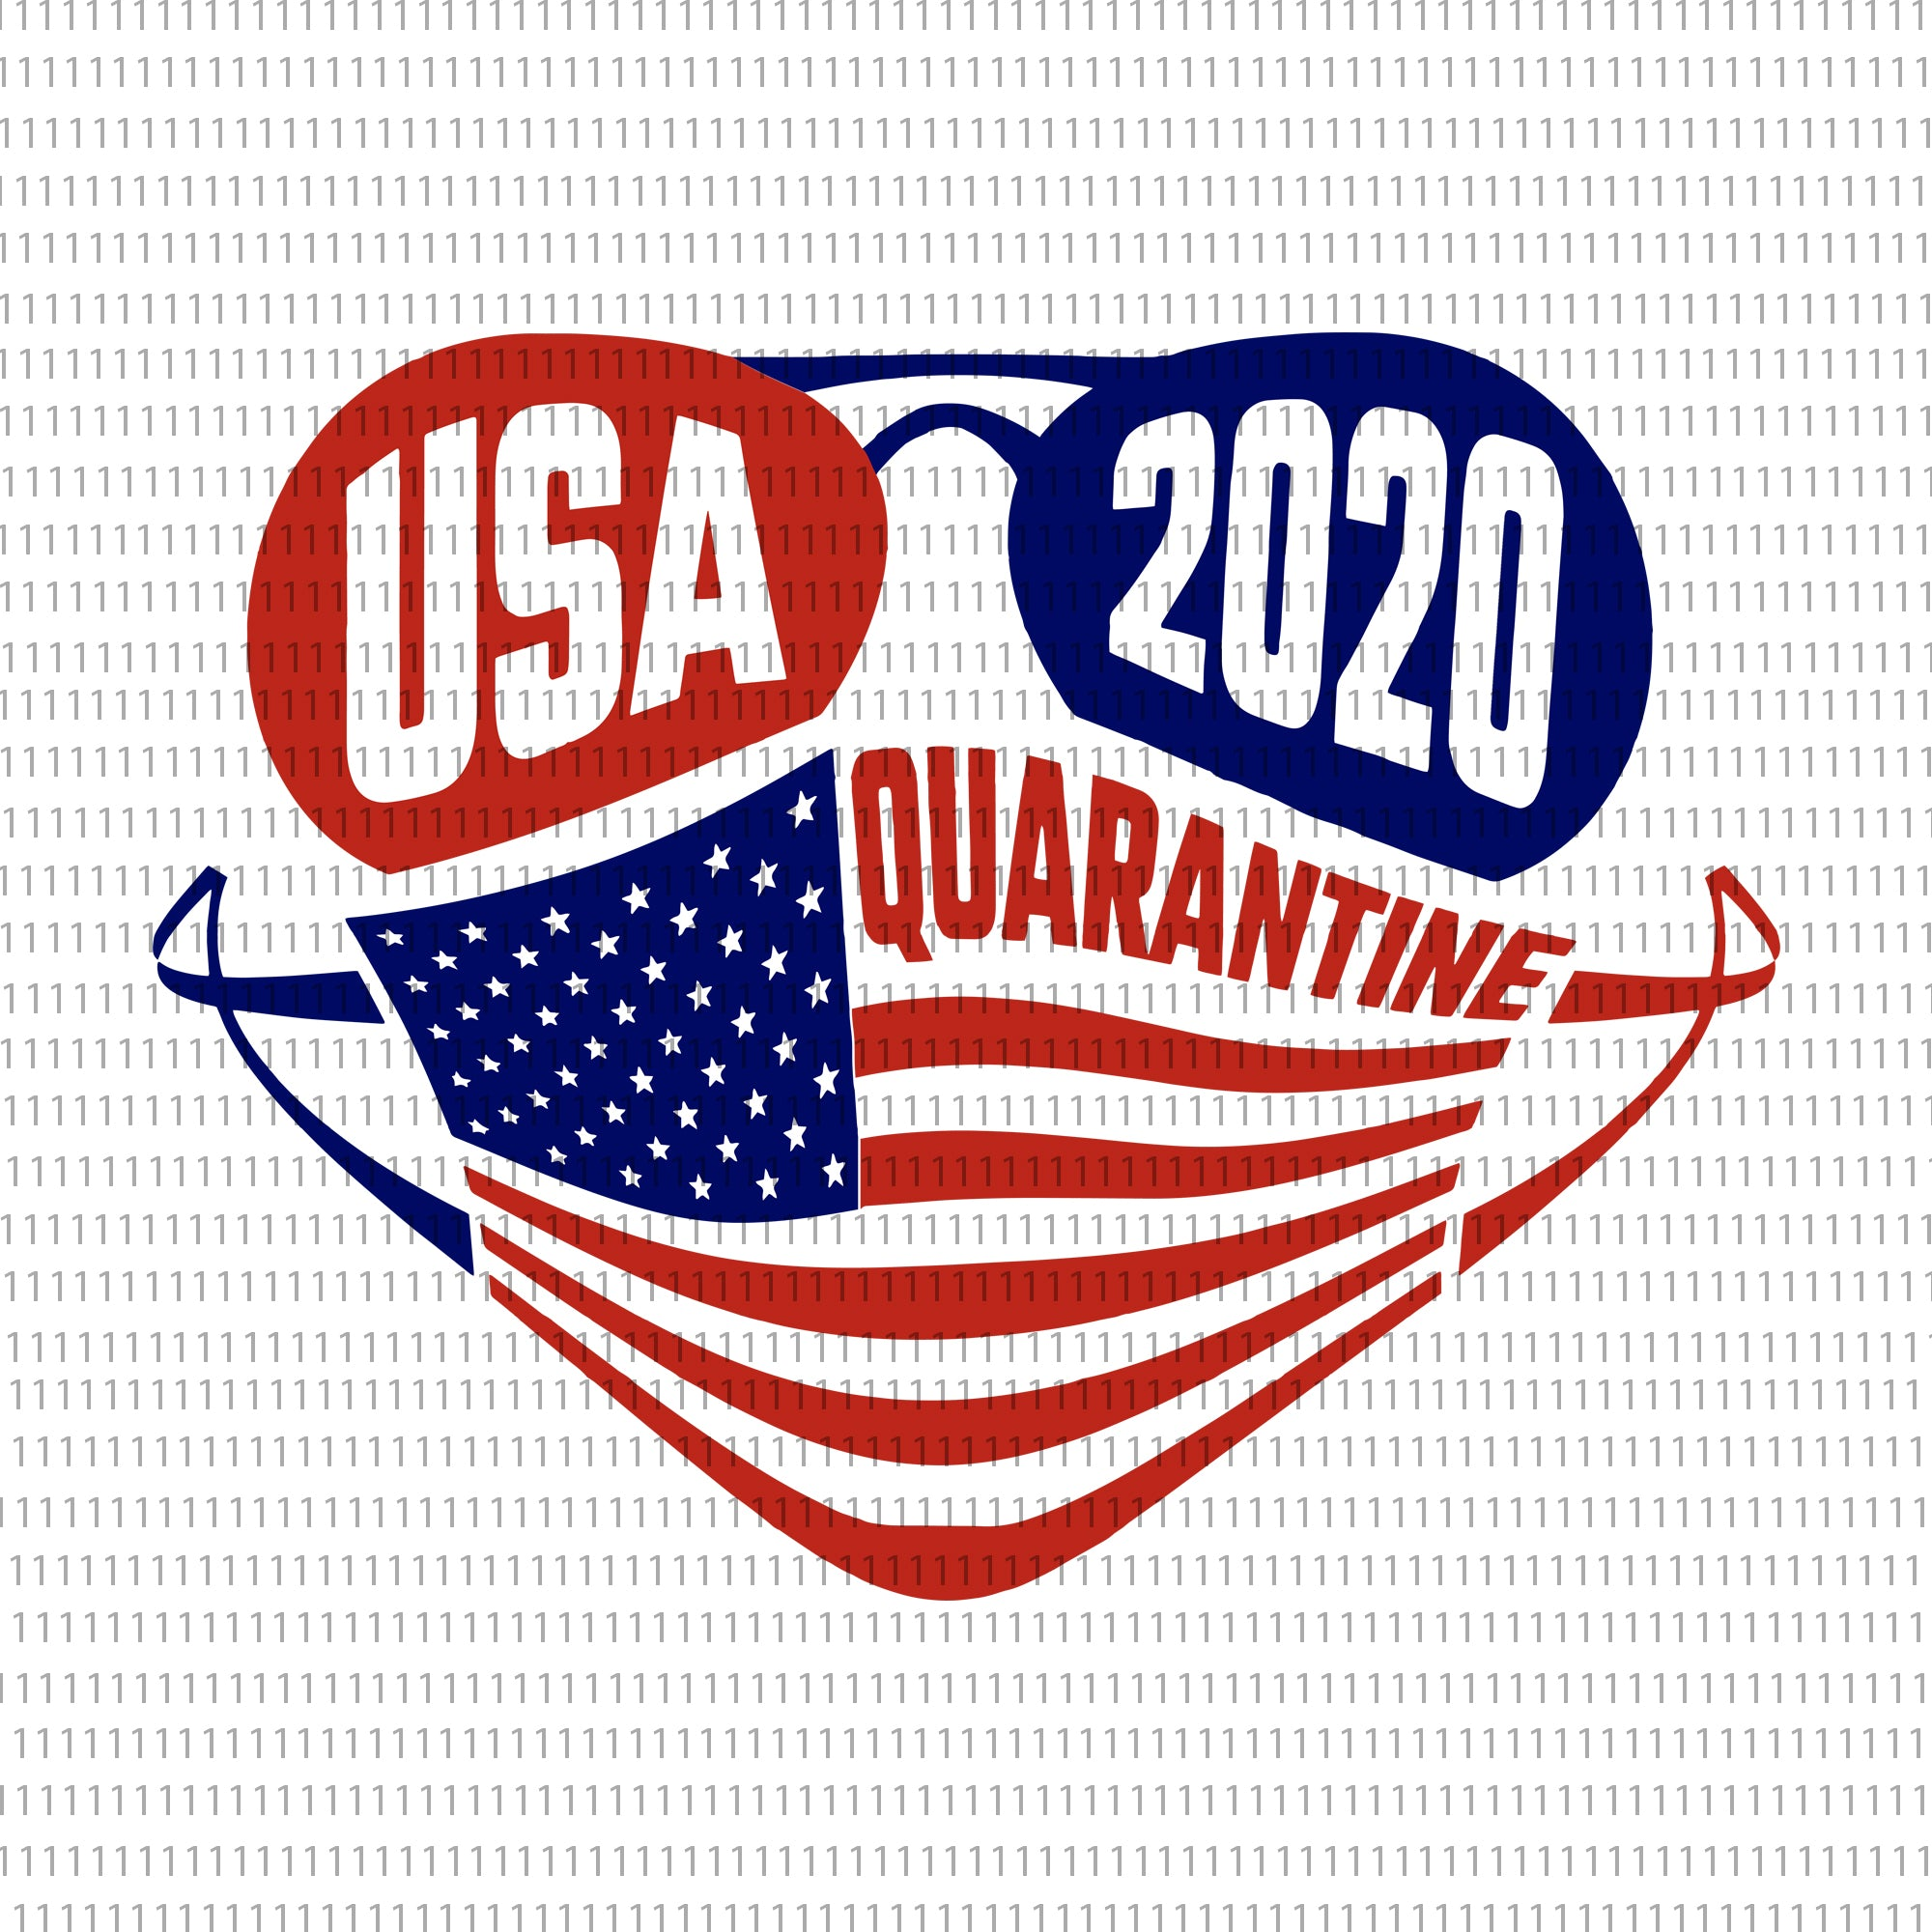 USA Quarantine 2020, USA Quarantine 2020 png, USA Quarantine 2020 Svg, USA Png, Stars and Stripes, 4th of July Svg, America Png, Patriotic Svg, Quarantine Png, July Fourth, 4th of July svg, 4th of July